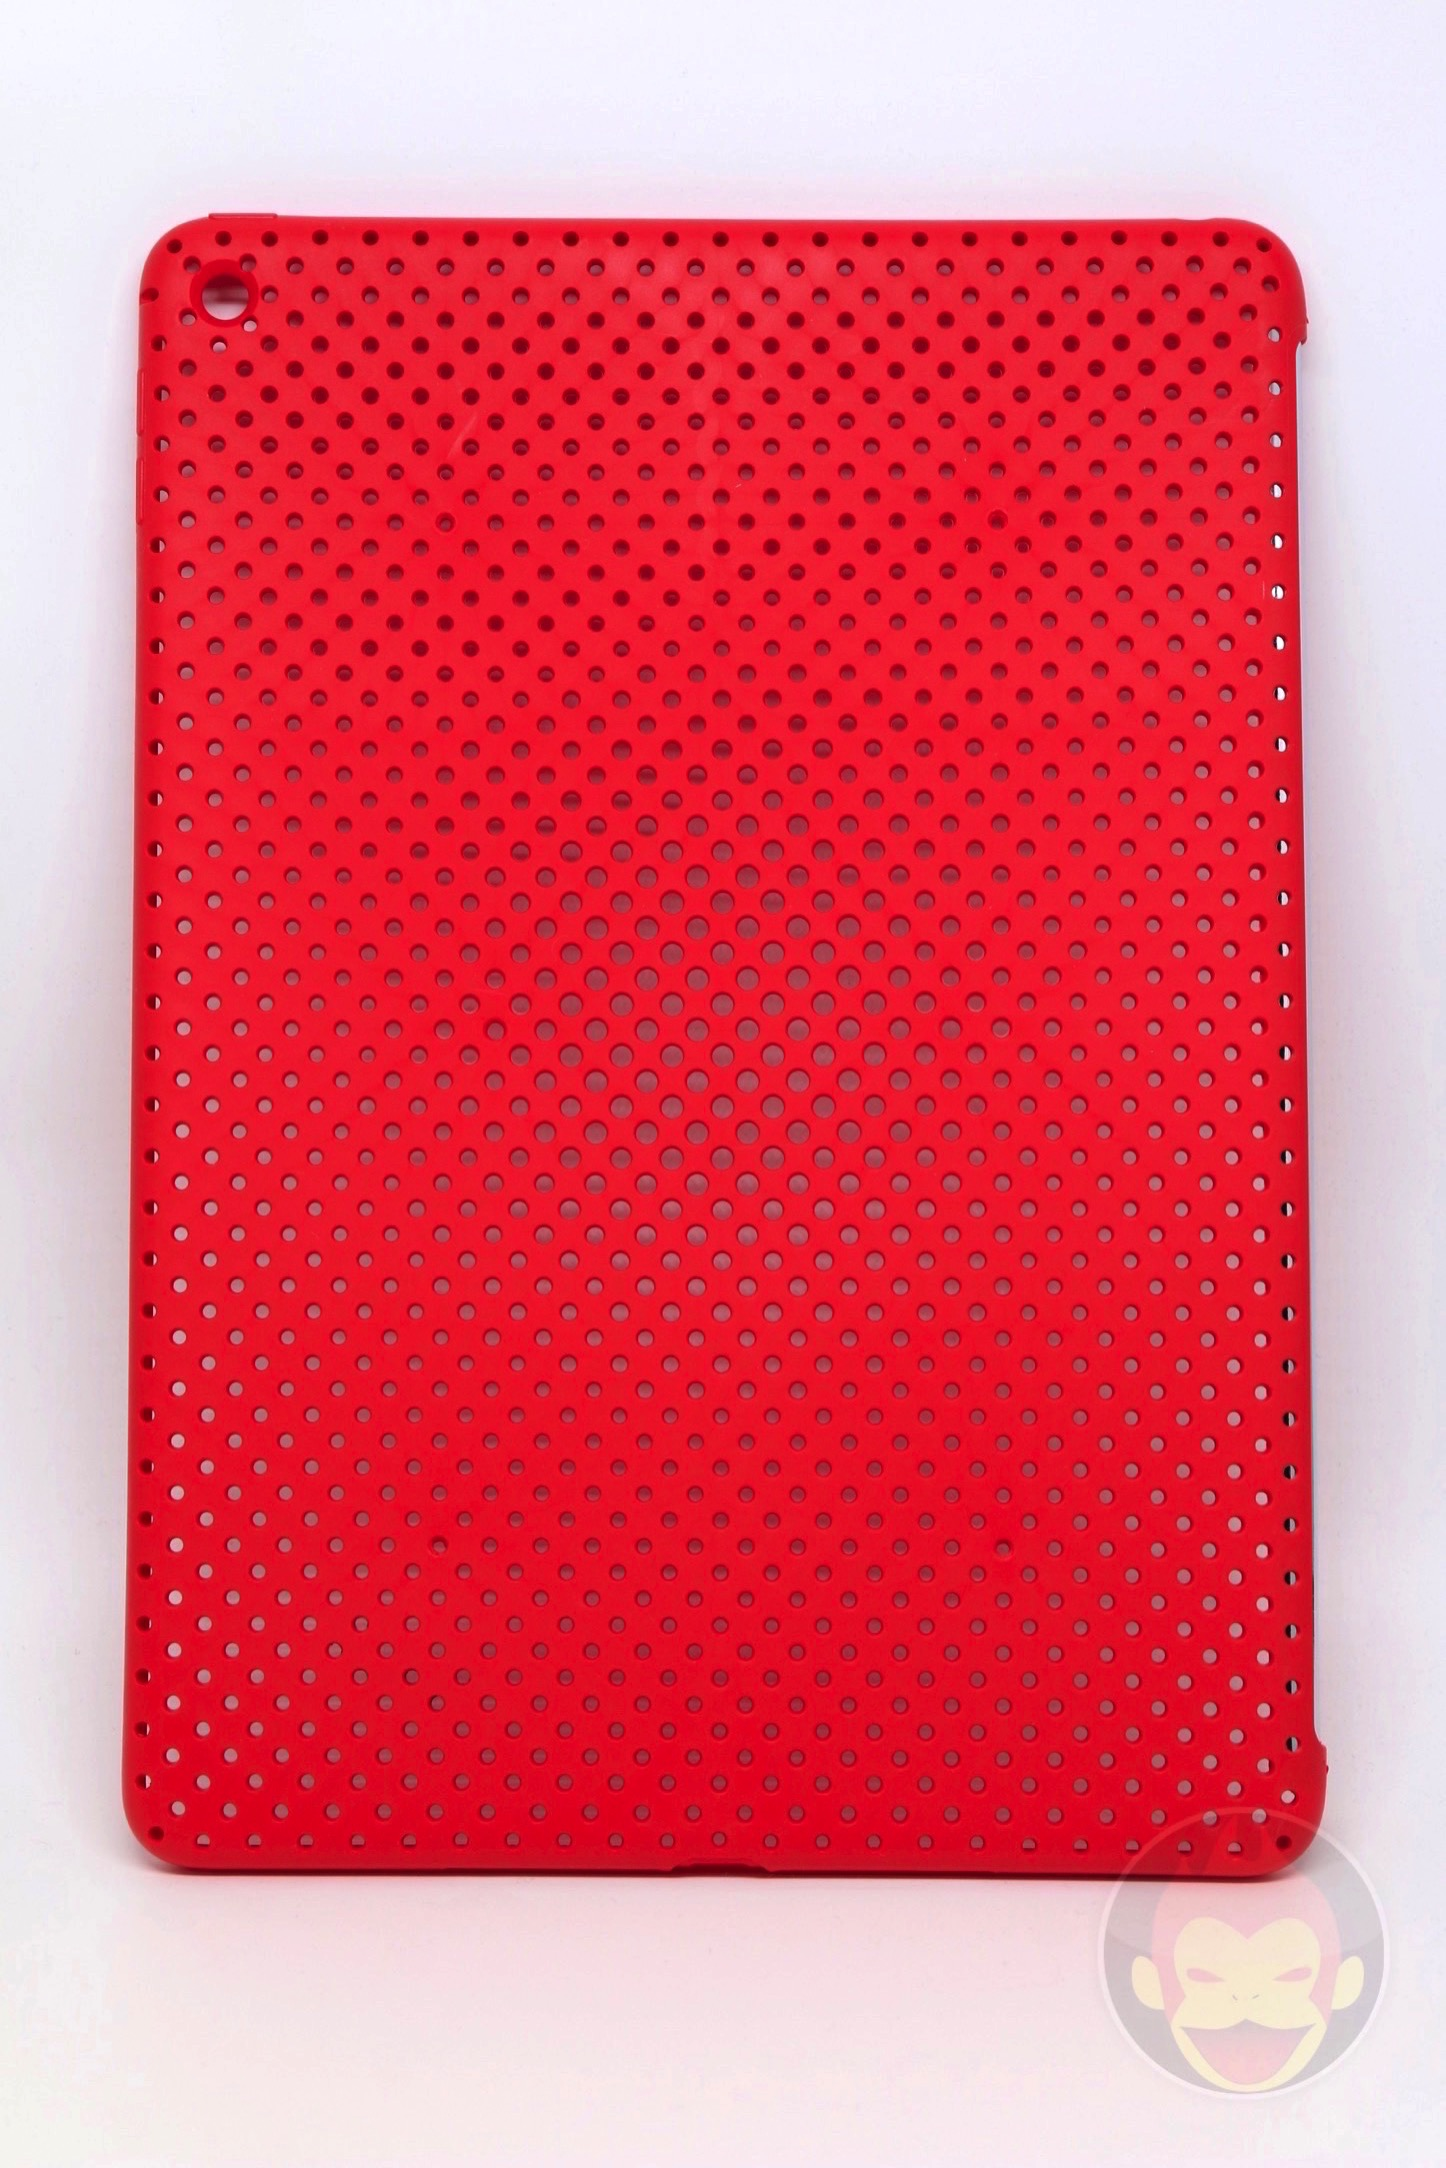 AndMesh-Mesh-Case-for-iPad-Air-2-21.JPG